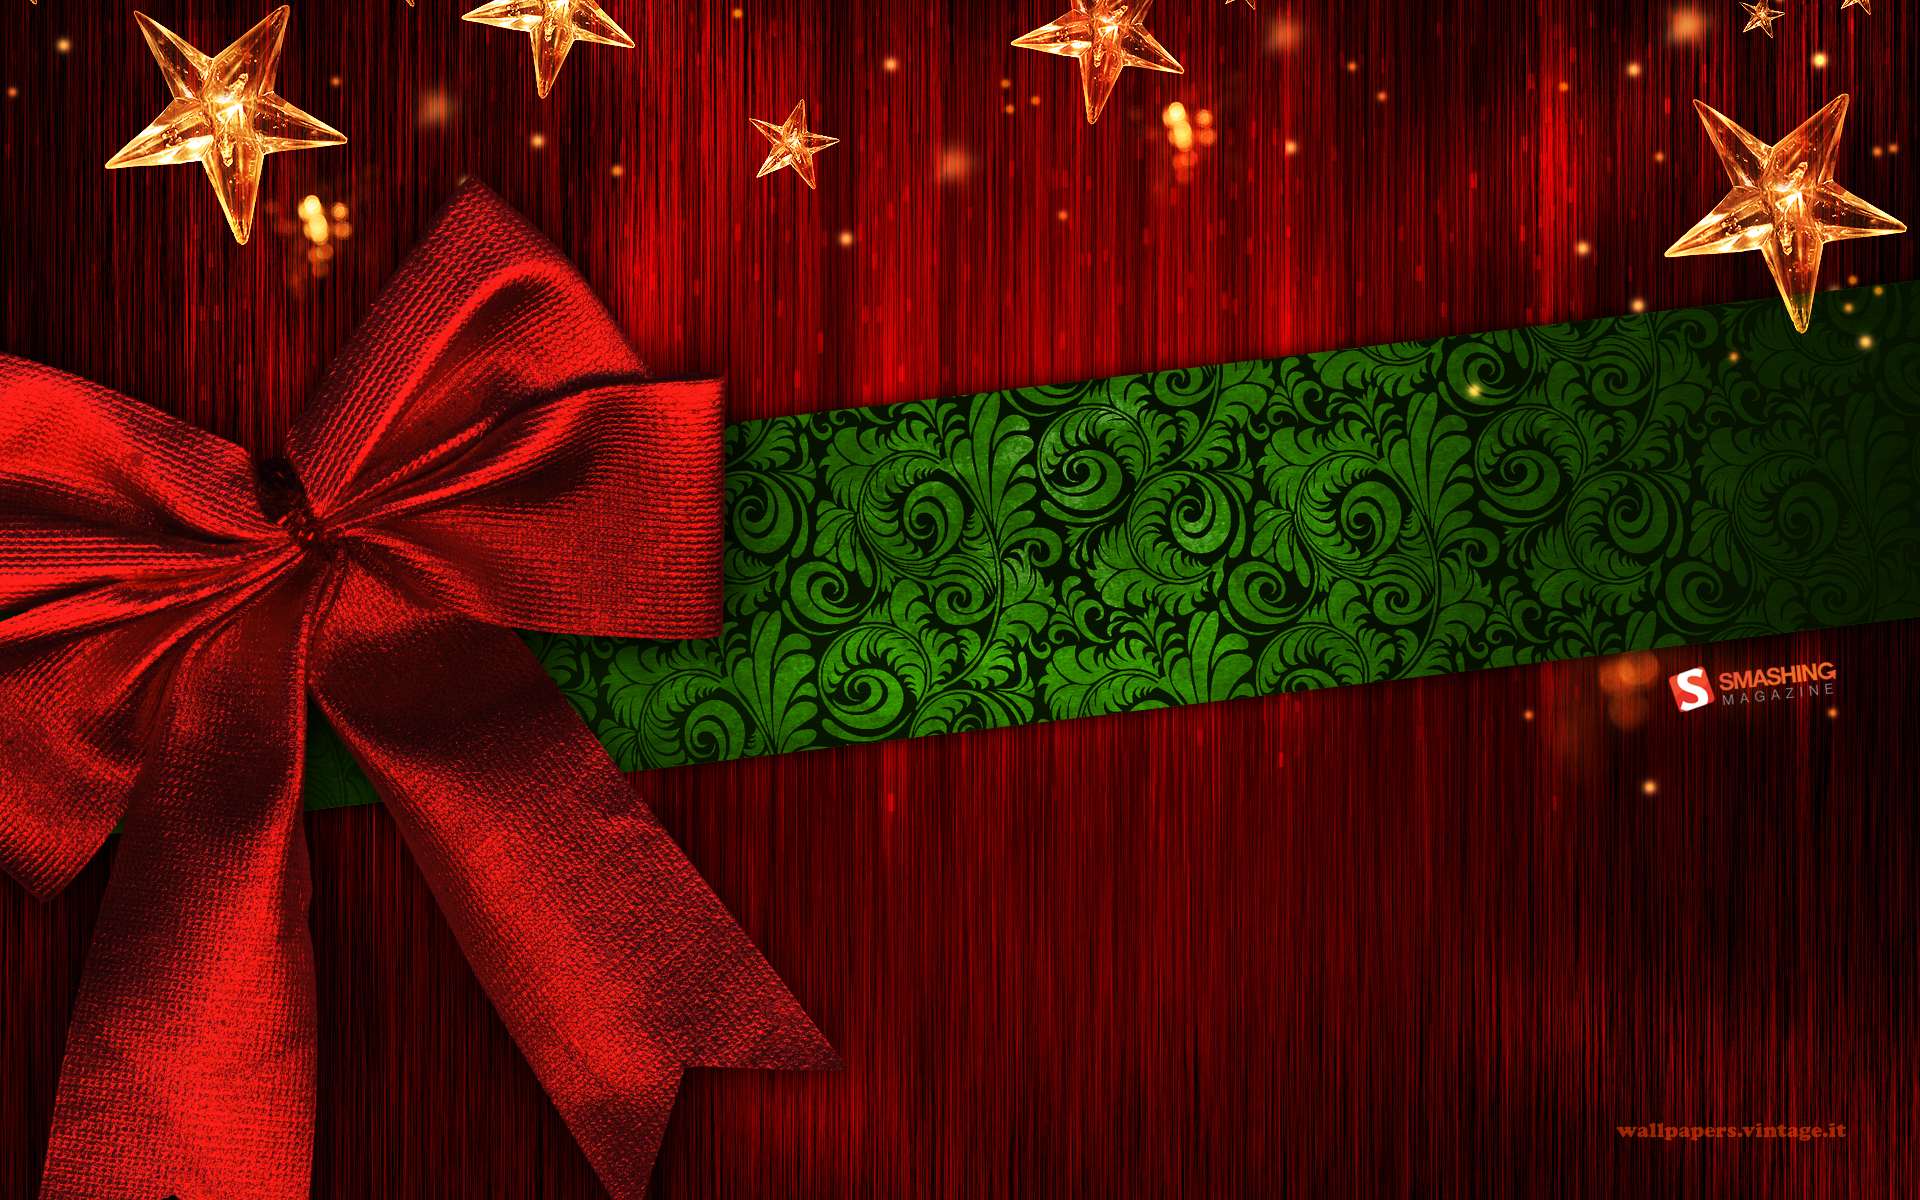 stars and stripes - christmas wallpaper - free desktop hd ipad